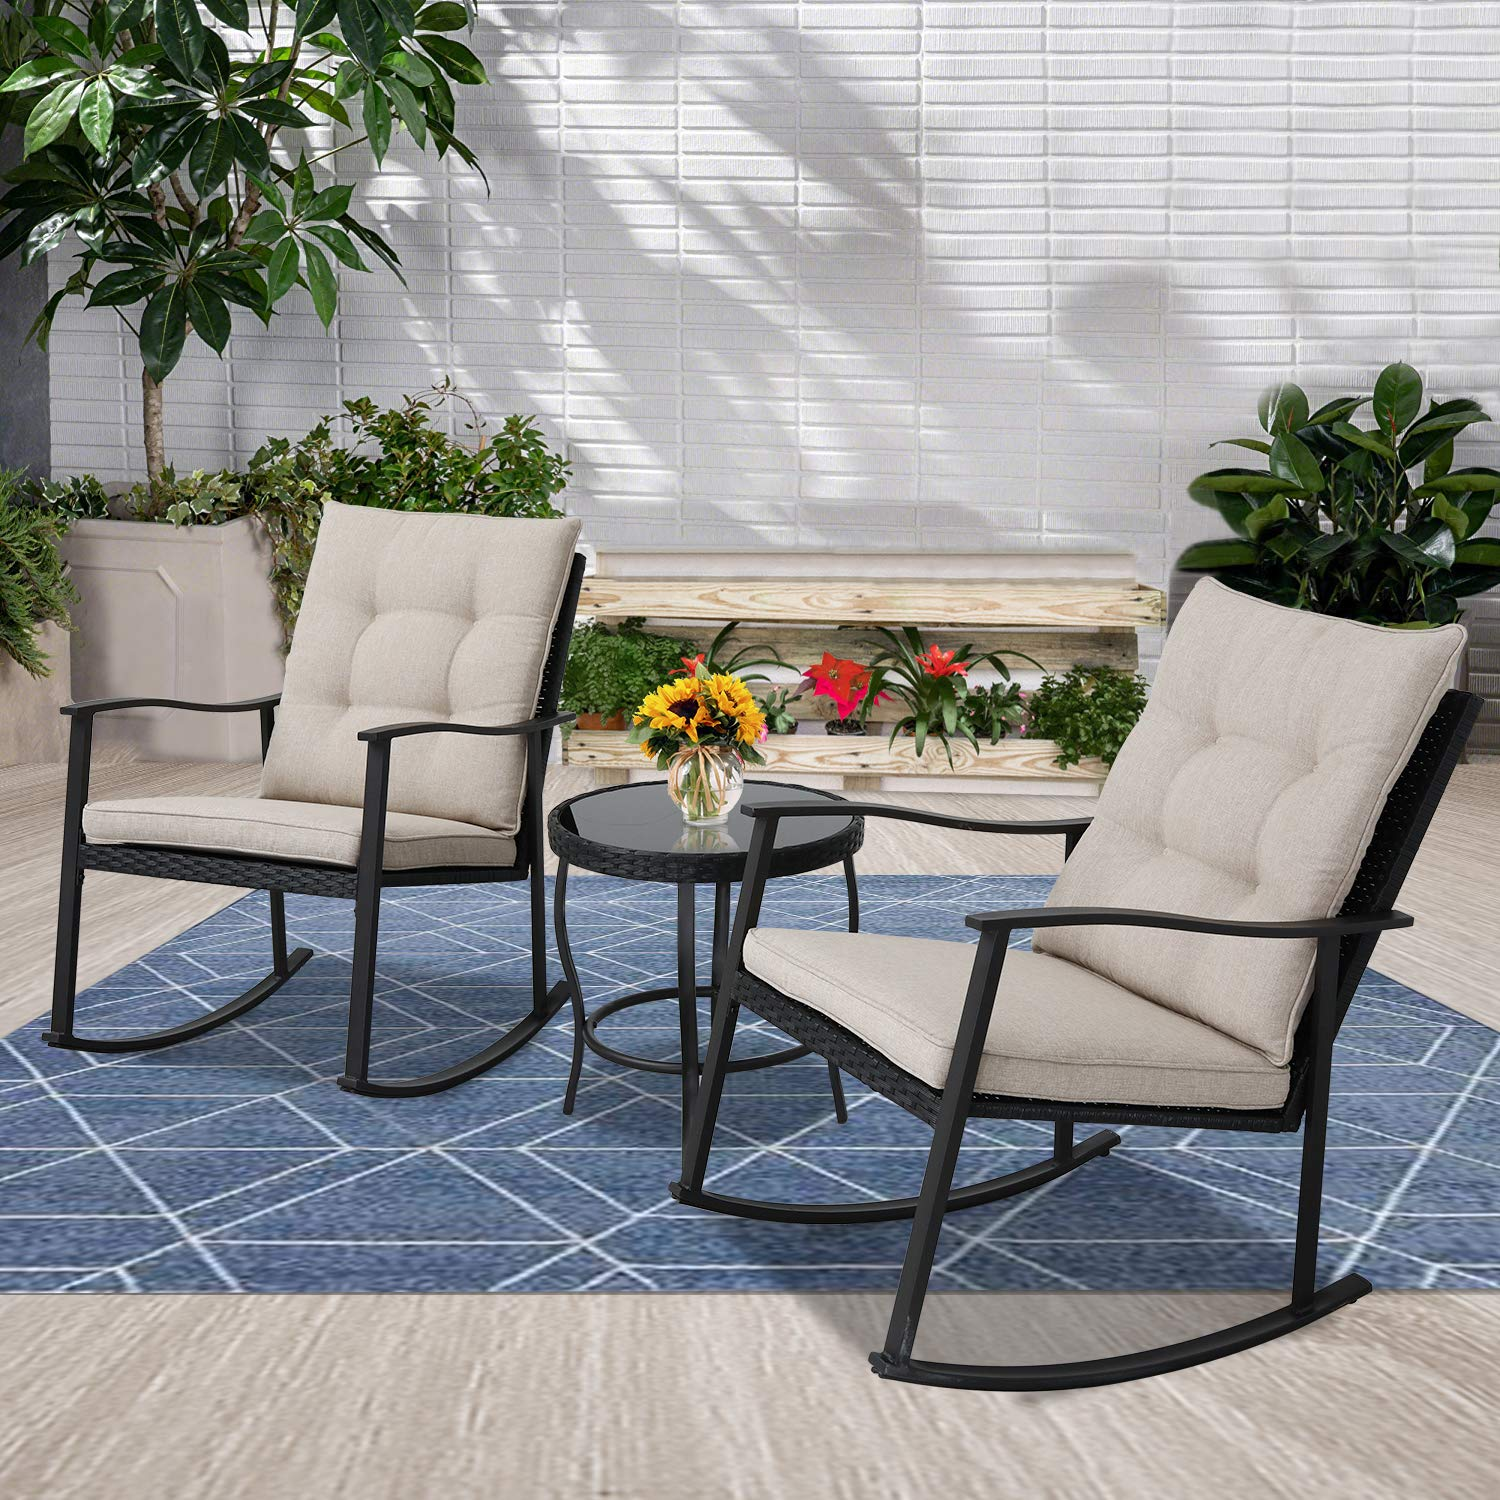 Incbruce Outdoor Rocking Chair Bistro Set 3-Piece Patio Furniture Sets All-Weather Steel Frame | Two Chairs & Round Glass Coffee Table for Patio Front Porch Garden Deck …